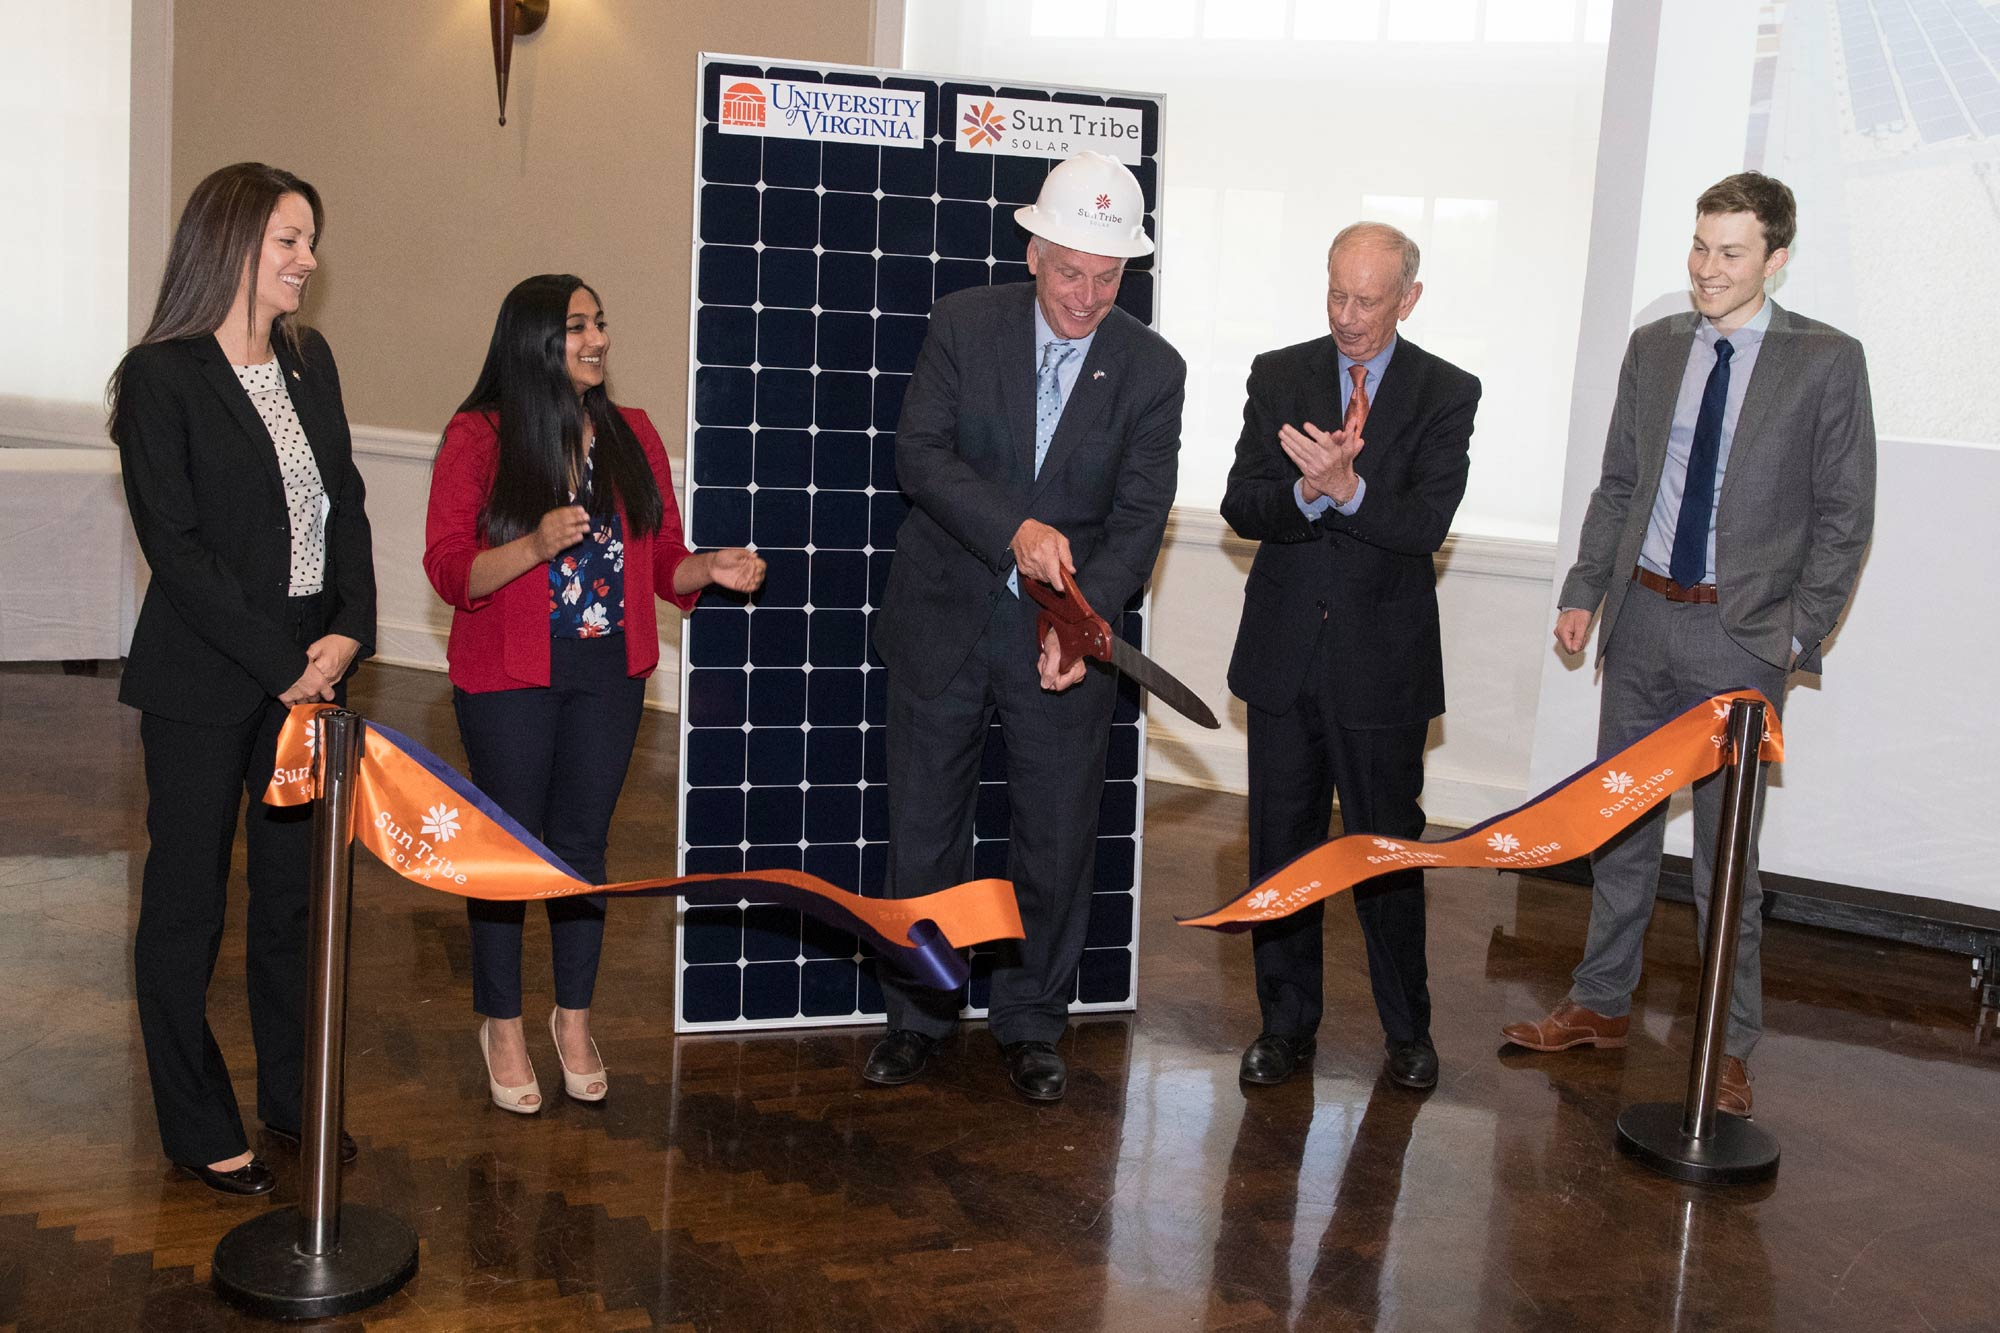 Virginia Gov. Terry McAuliffe cuts a ceremonial ribbon launching a solar array on Clemons Library that will provide 15 percent of the building's electricity.